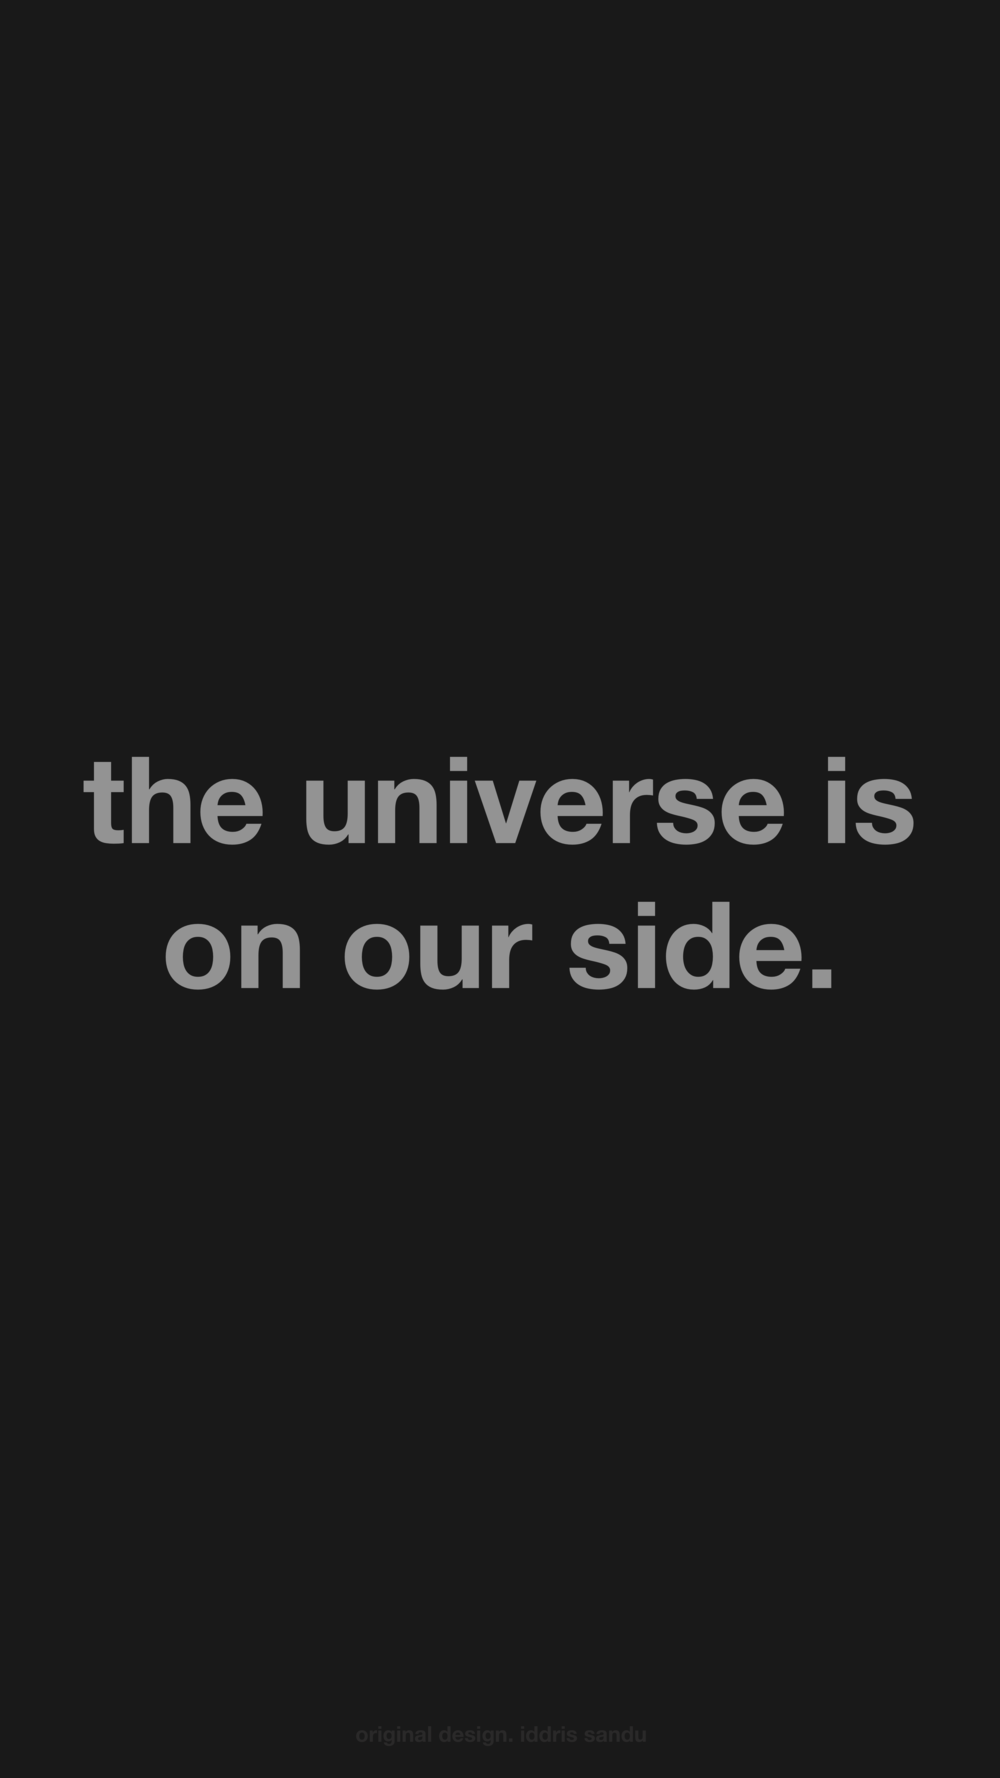 the universe is on our side (mobile).png